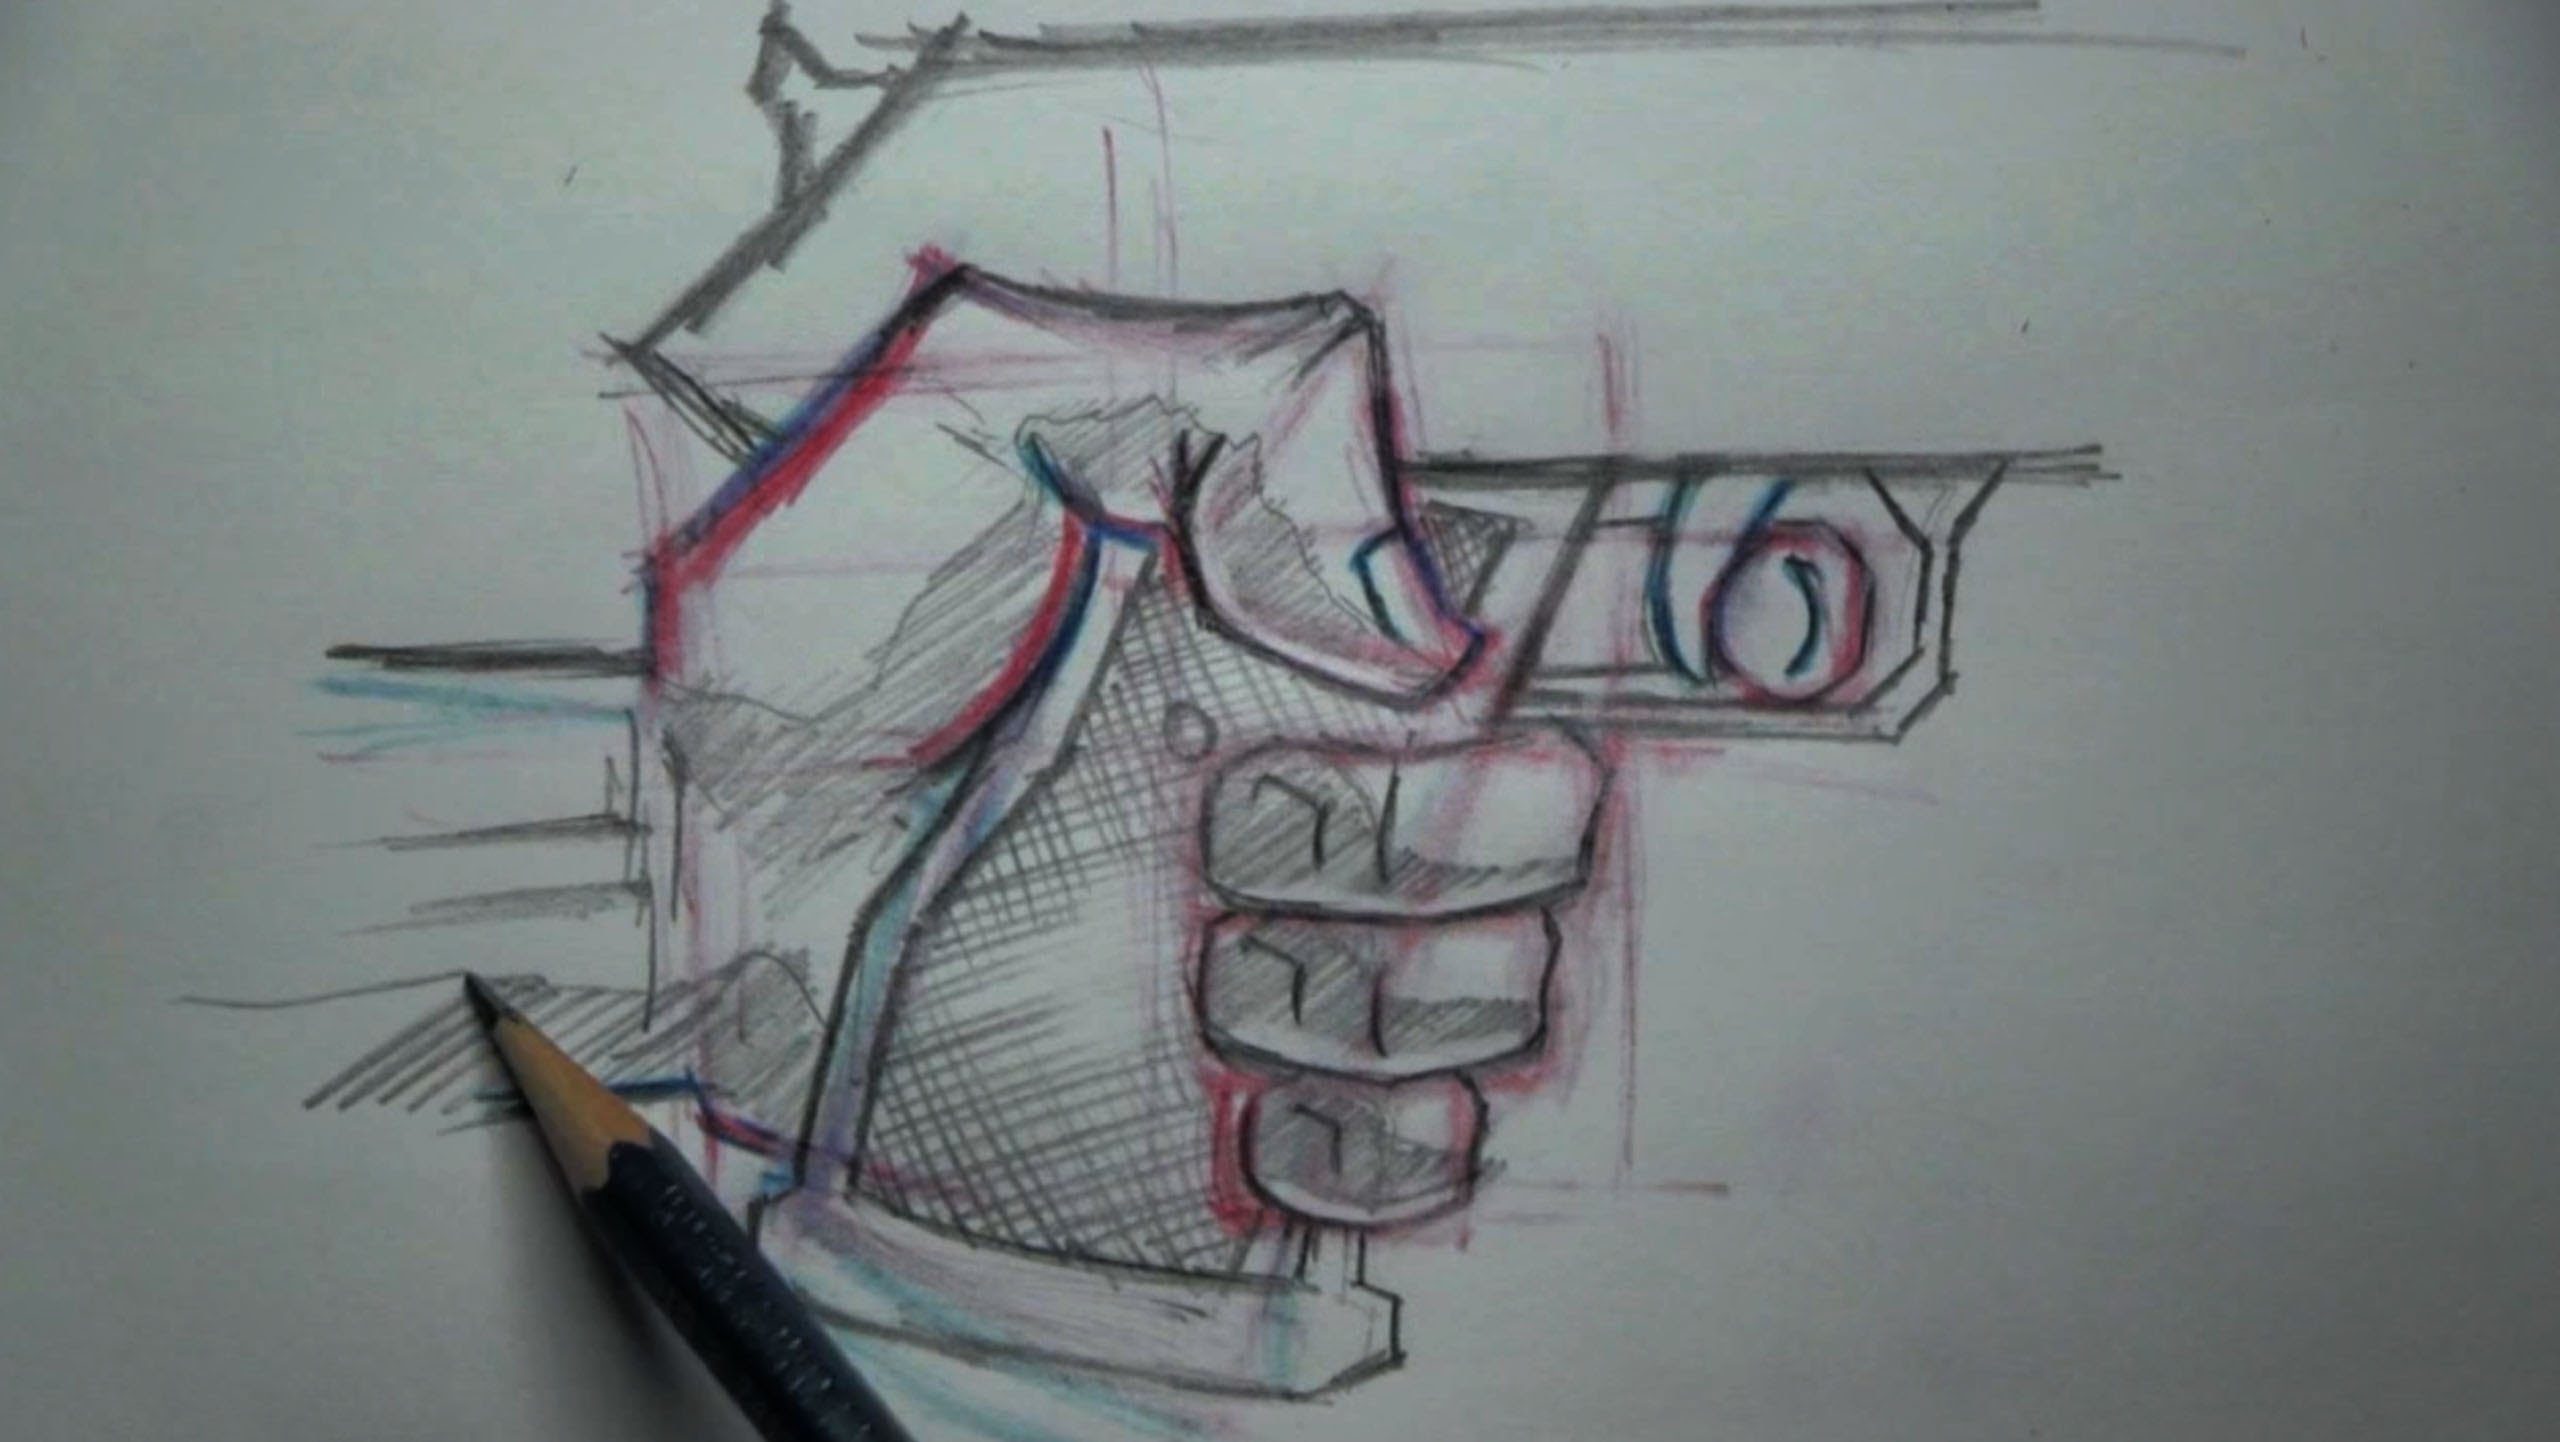 Drawn pistol hand holding How Draw Holding Tutorial To